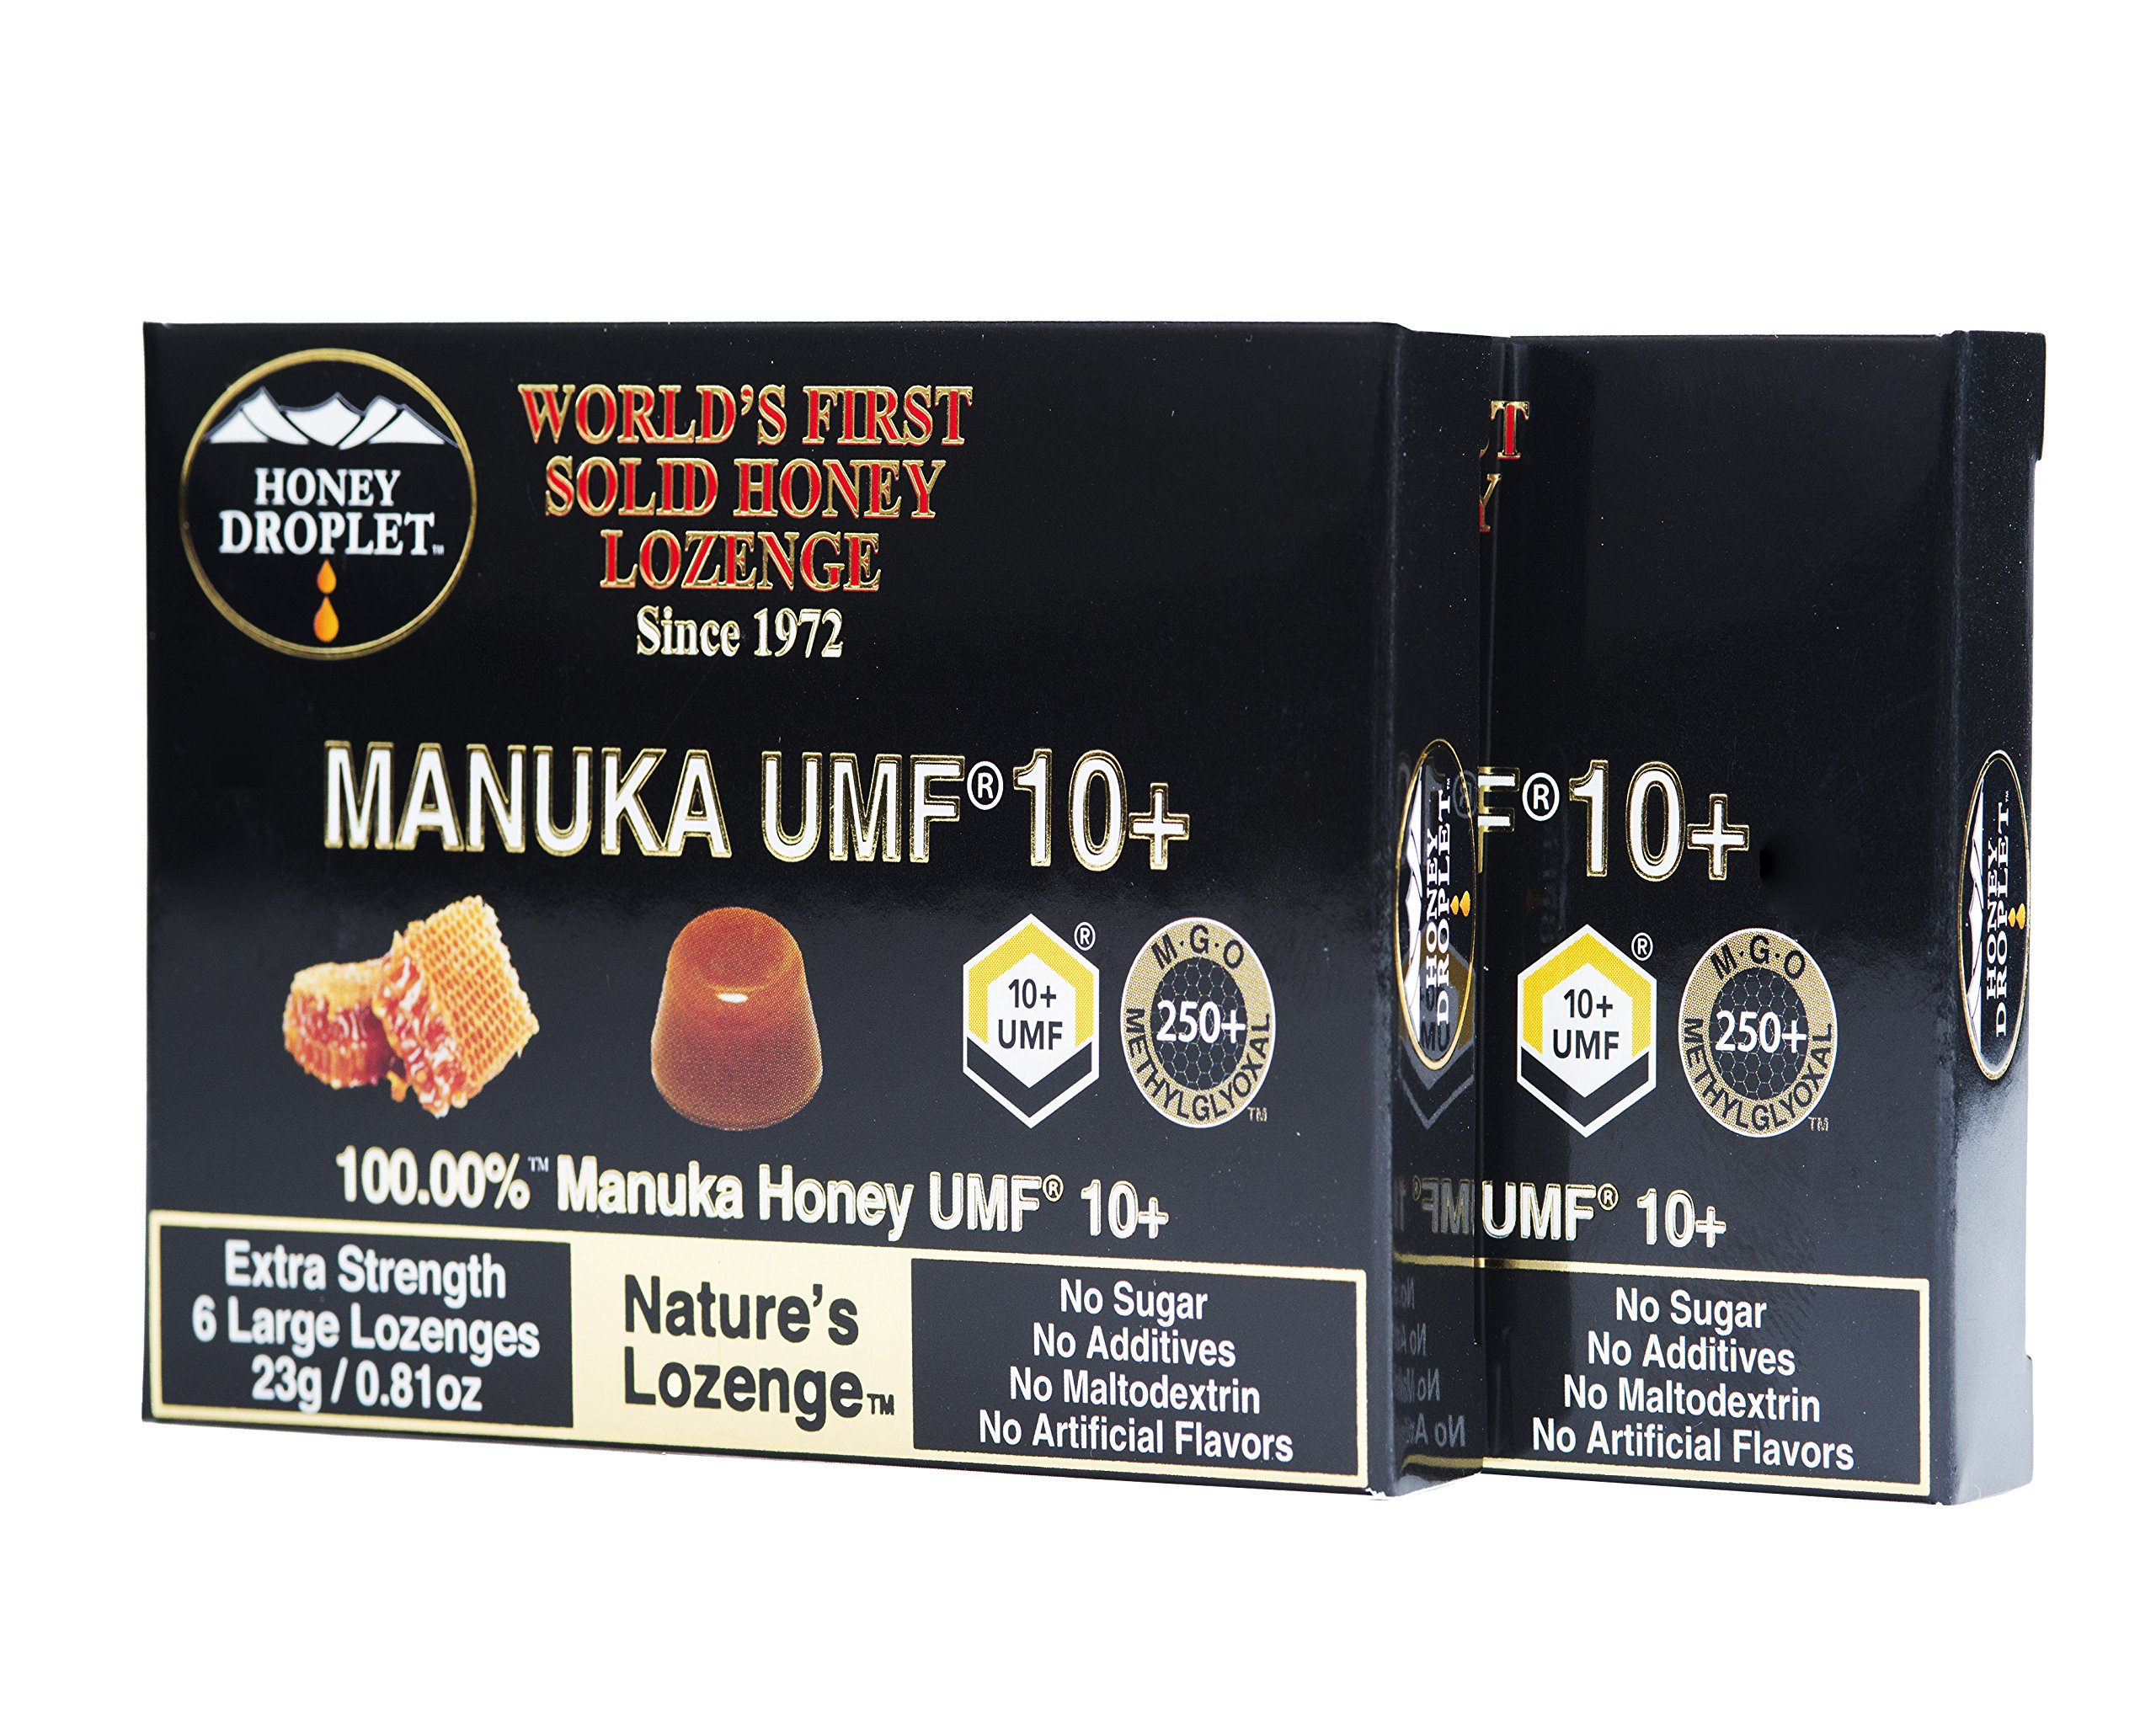 Honey Droplet Pure 100% Manuka honey lozenge in Twin Pack value UMF 10+ organic cough drops from New Zealand in a solid form with no added sugar no maltodextrin, a natural super-food antioxidant